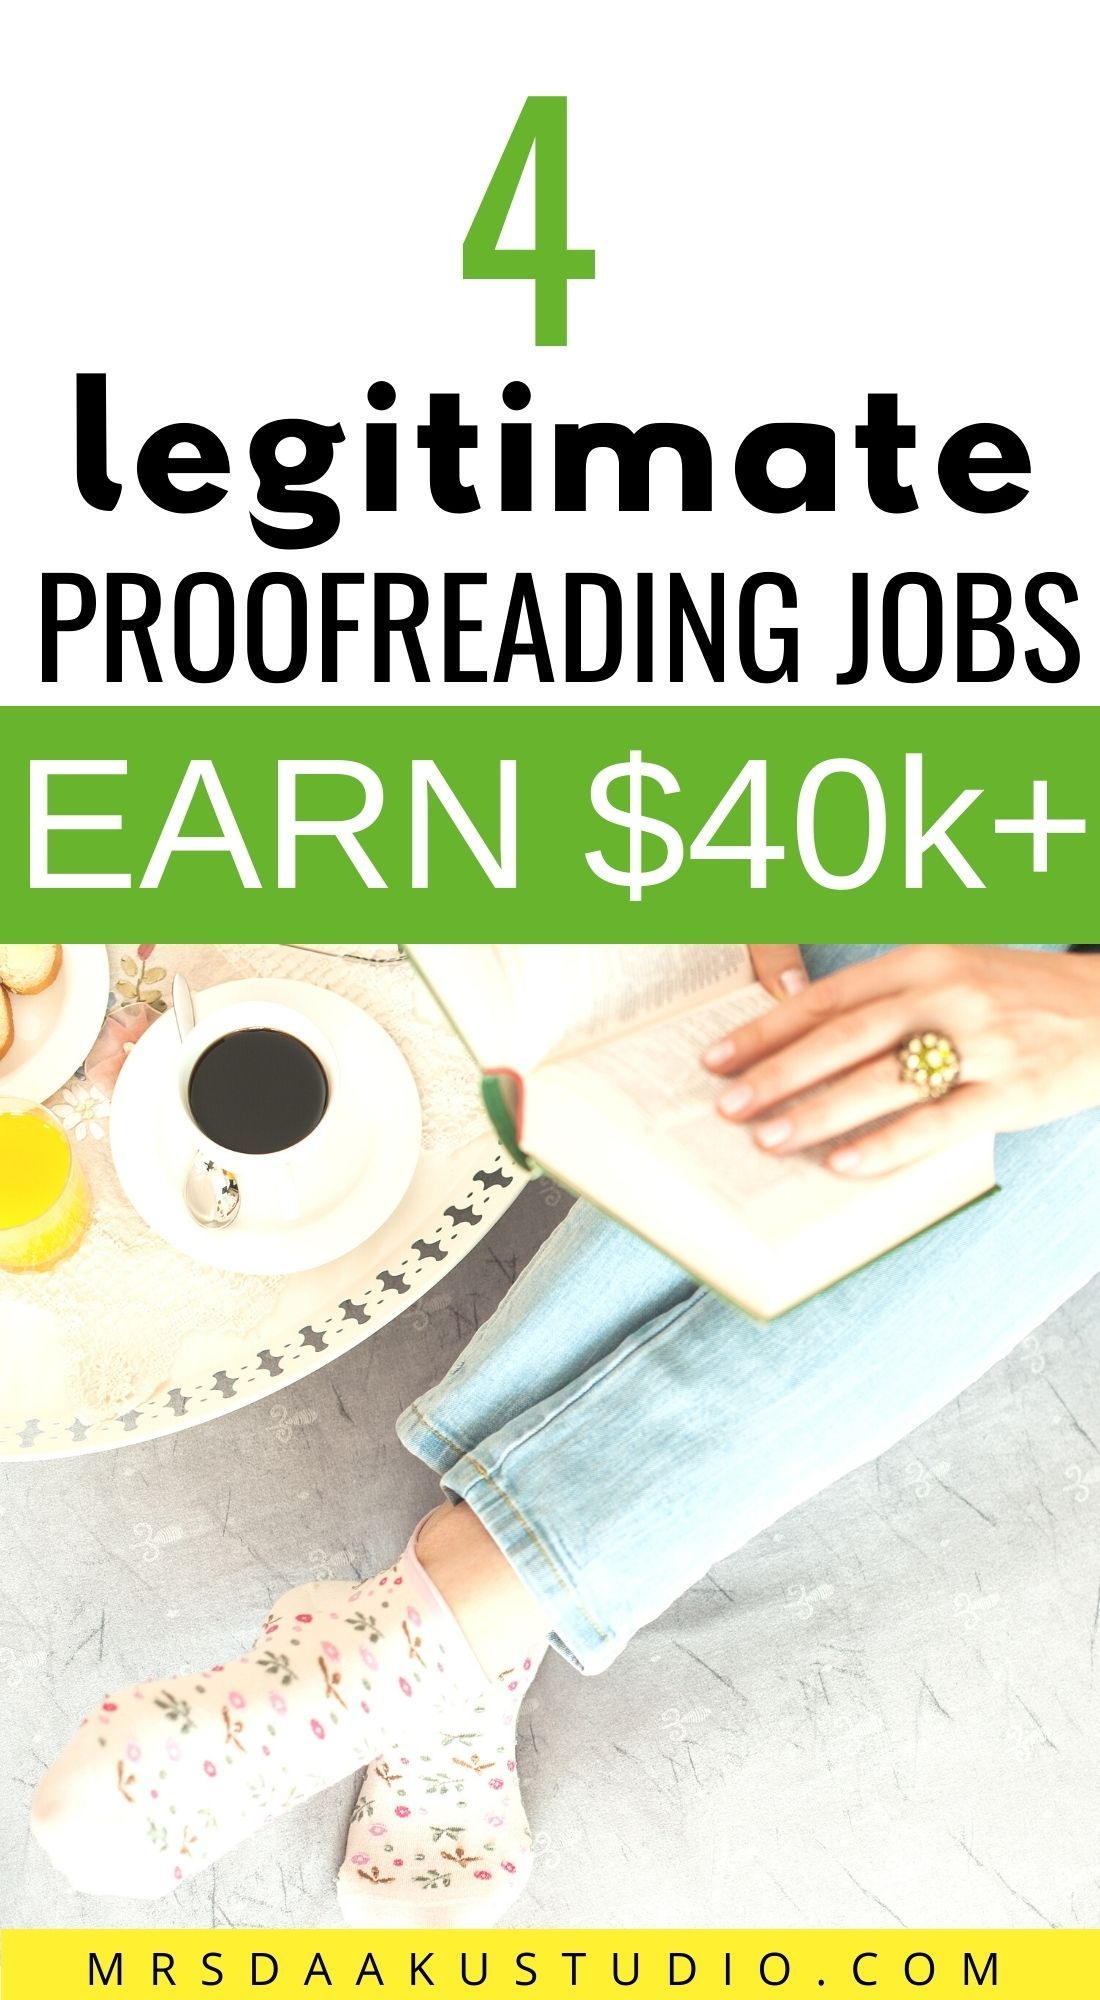 30 Best Online Proofreading Jobs To Work From Home